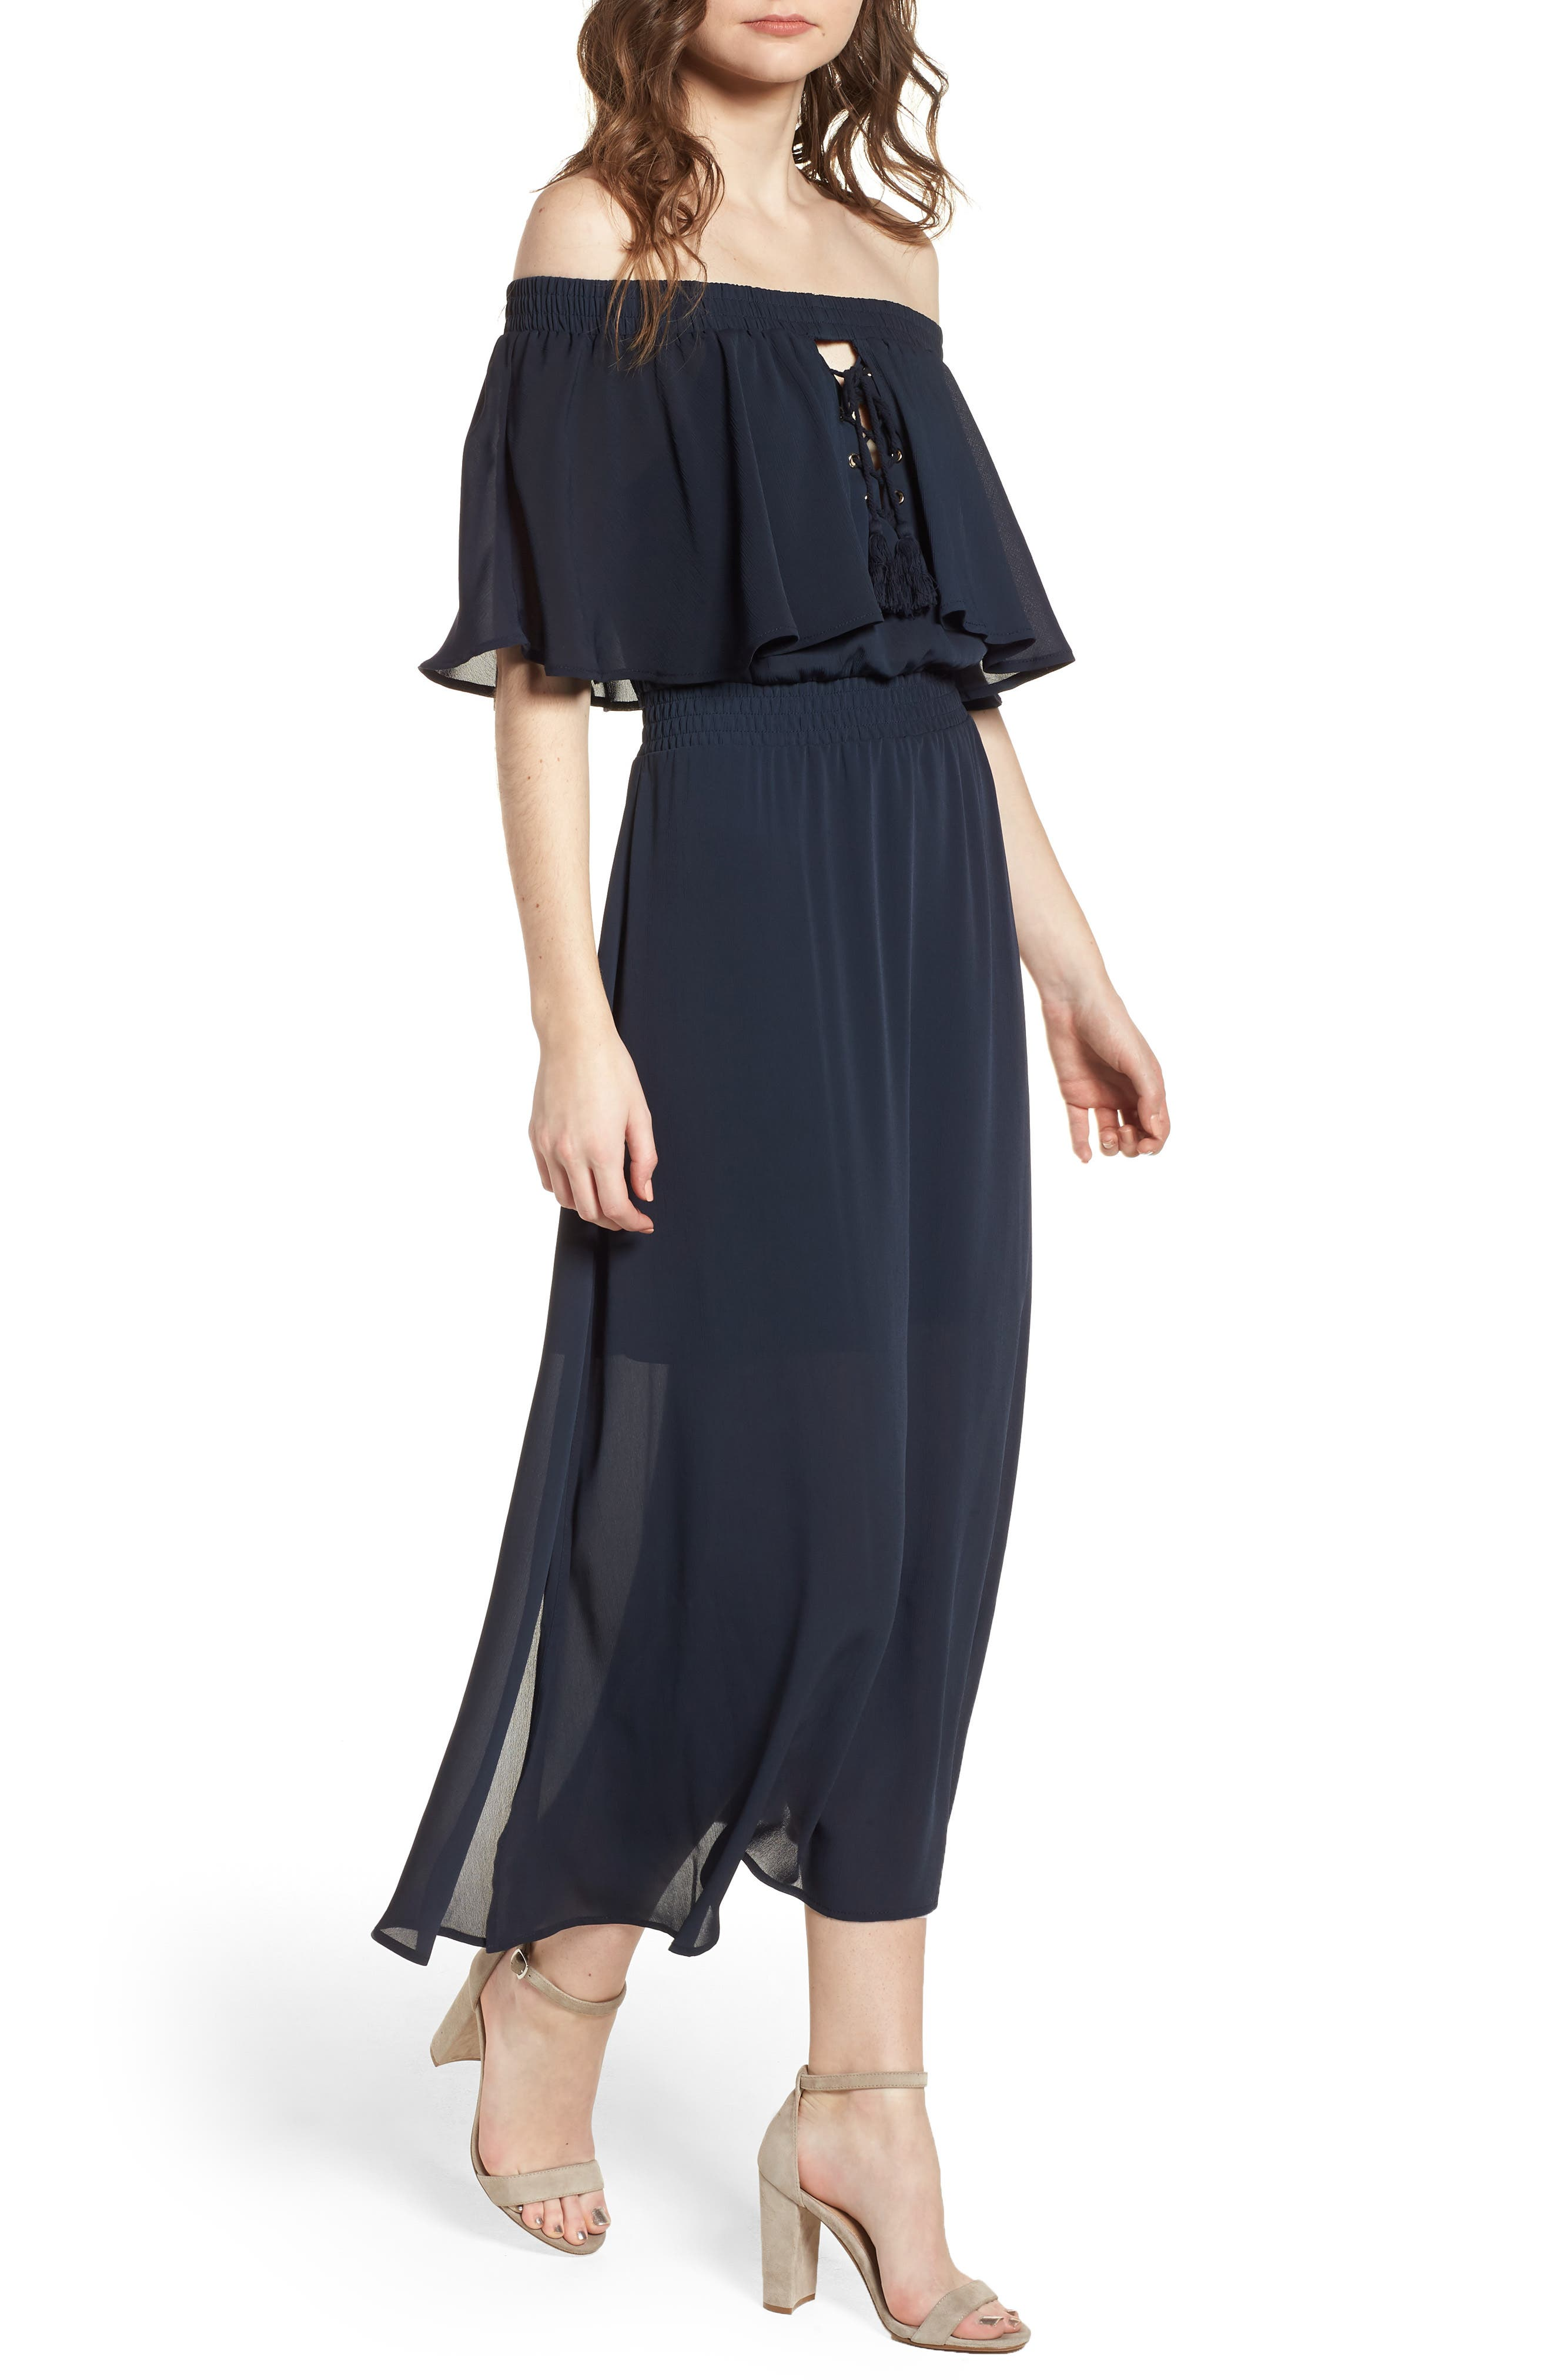 Touch the Sun Off the Shoulder Dress,                         Main,                         color, Midnight